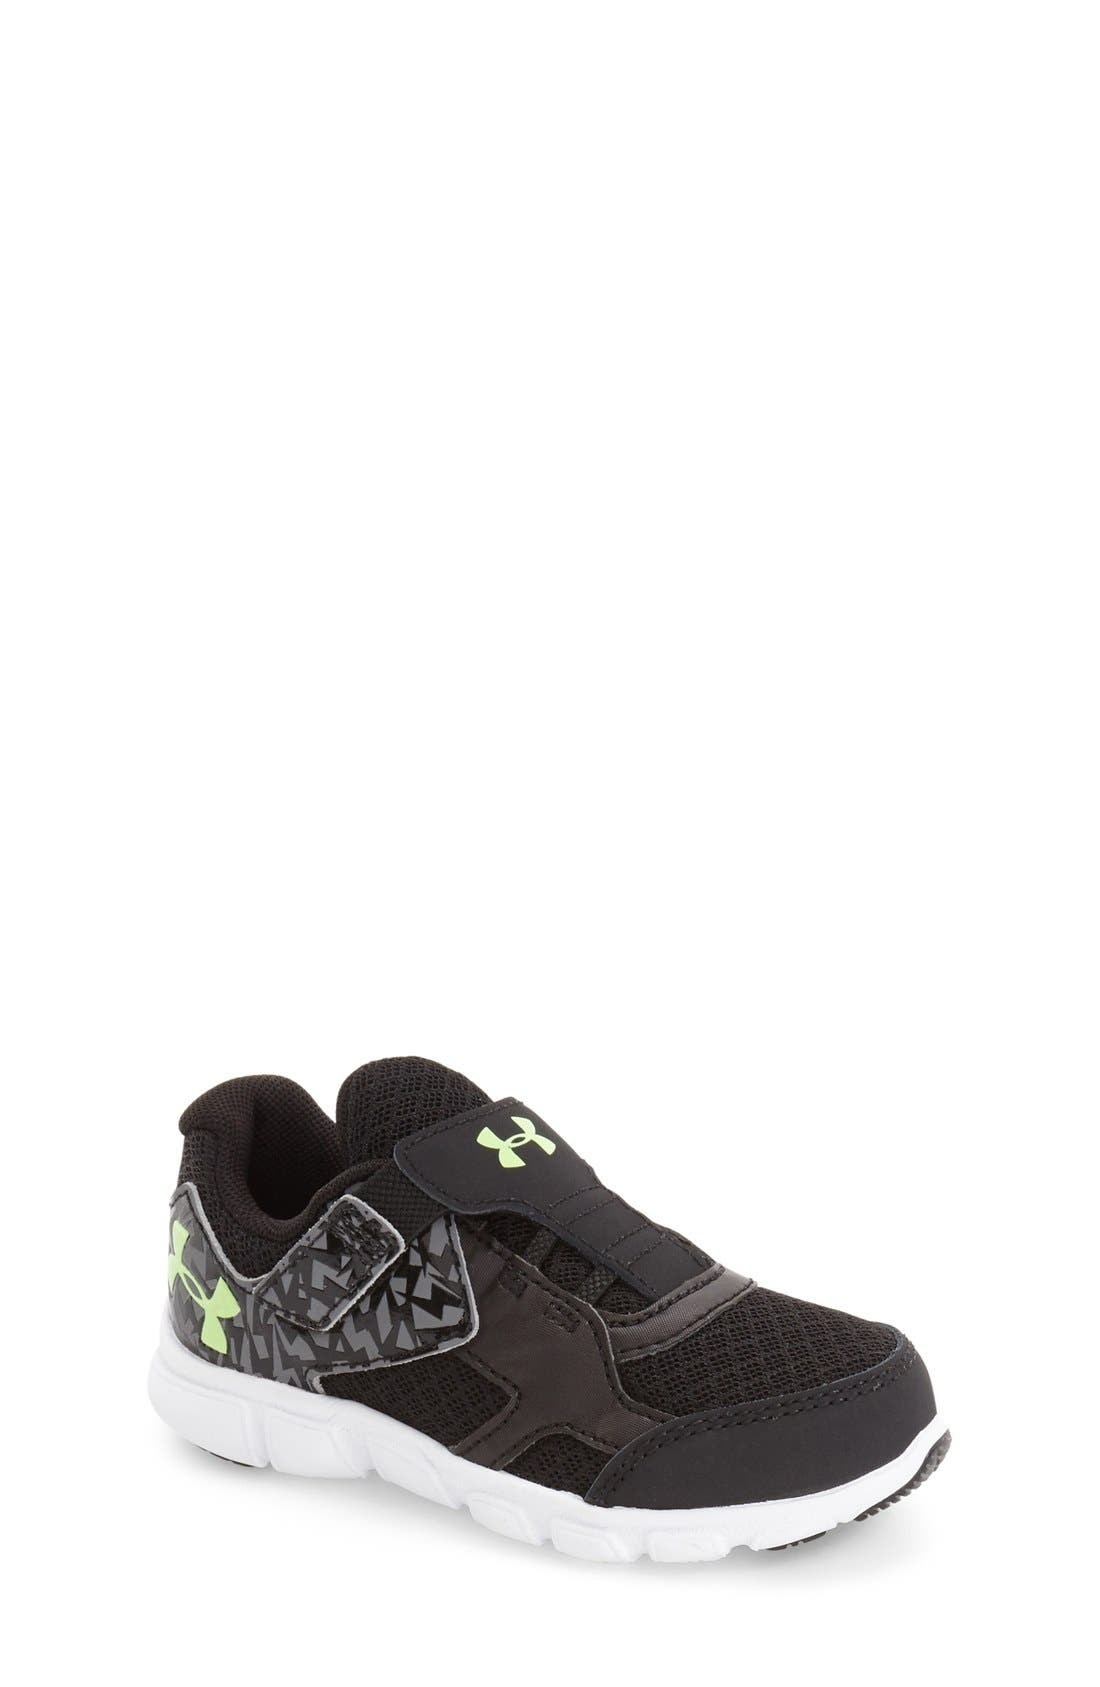 Engage II Athletic Shoe,                         Main,                         color, Black/ White/ Lime Light